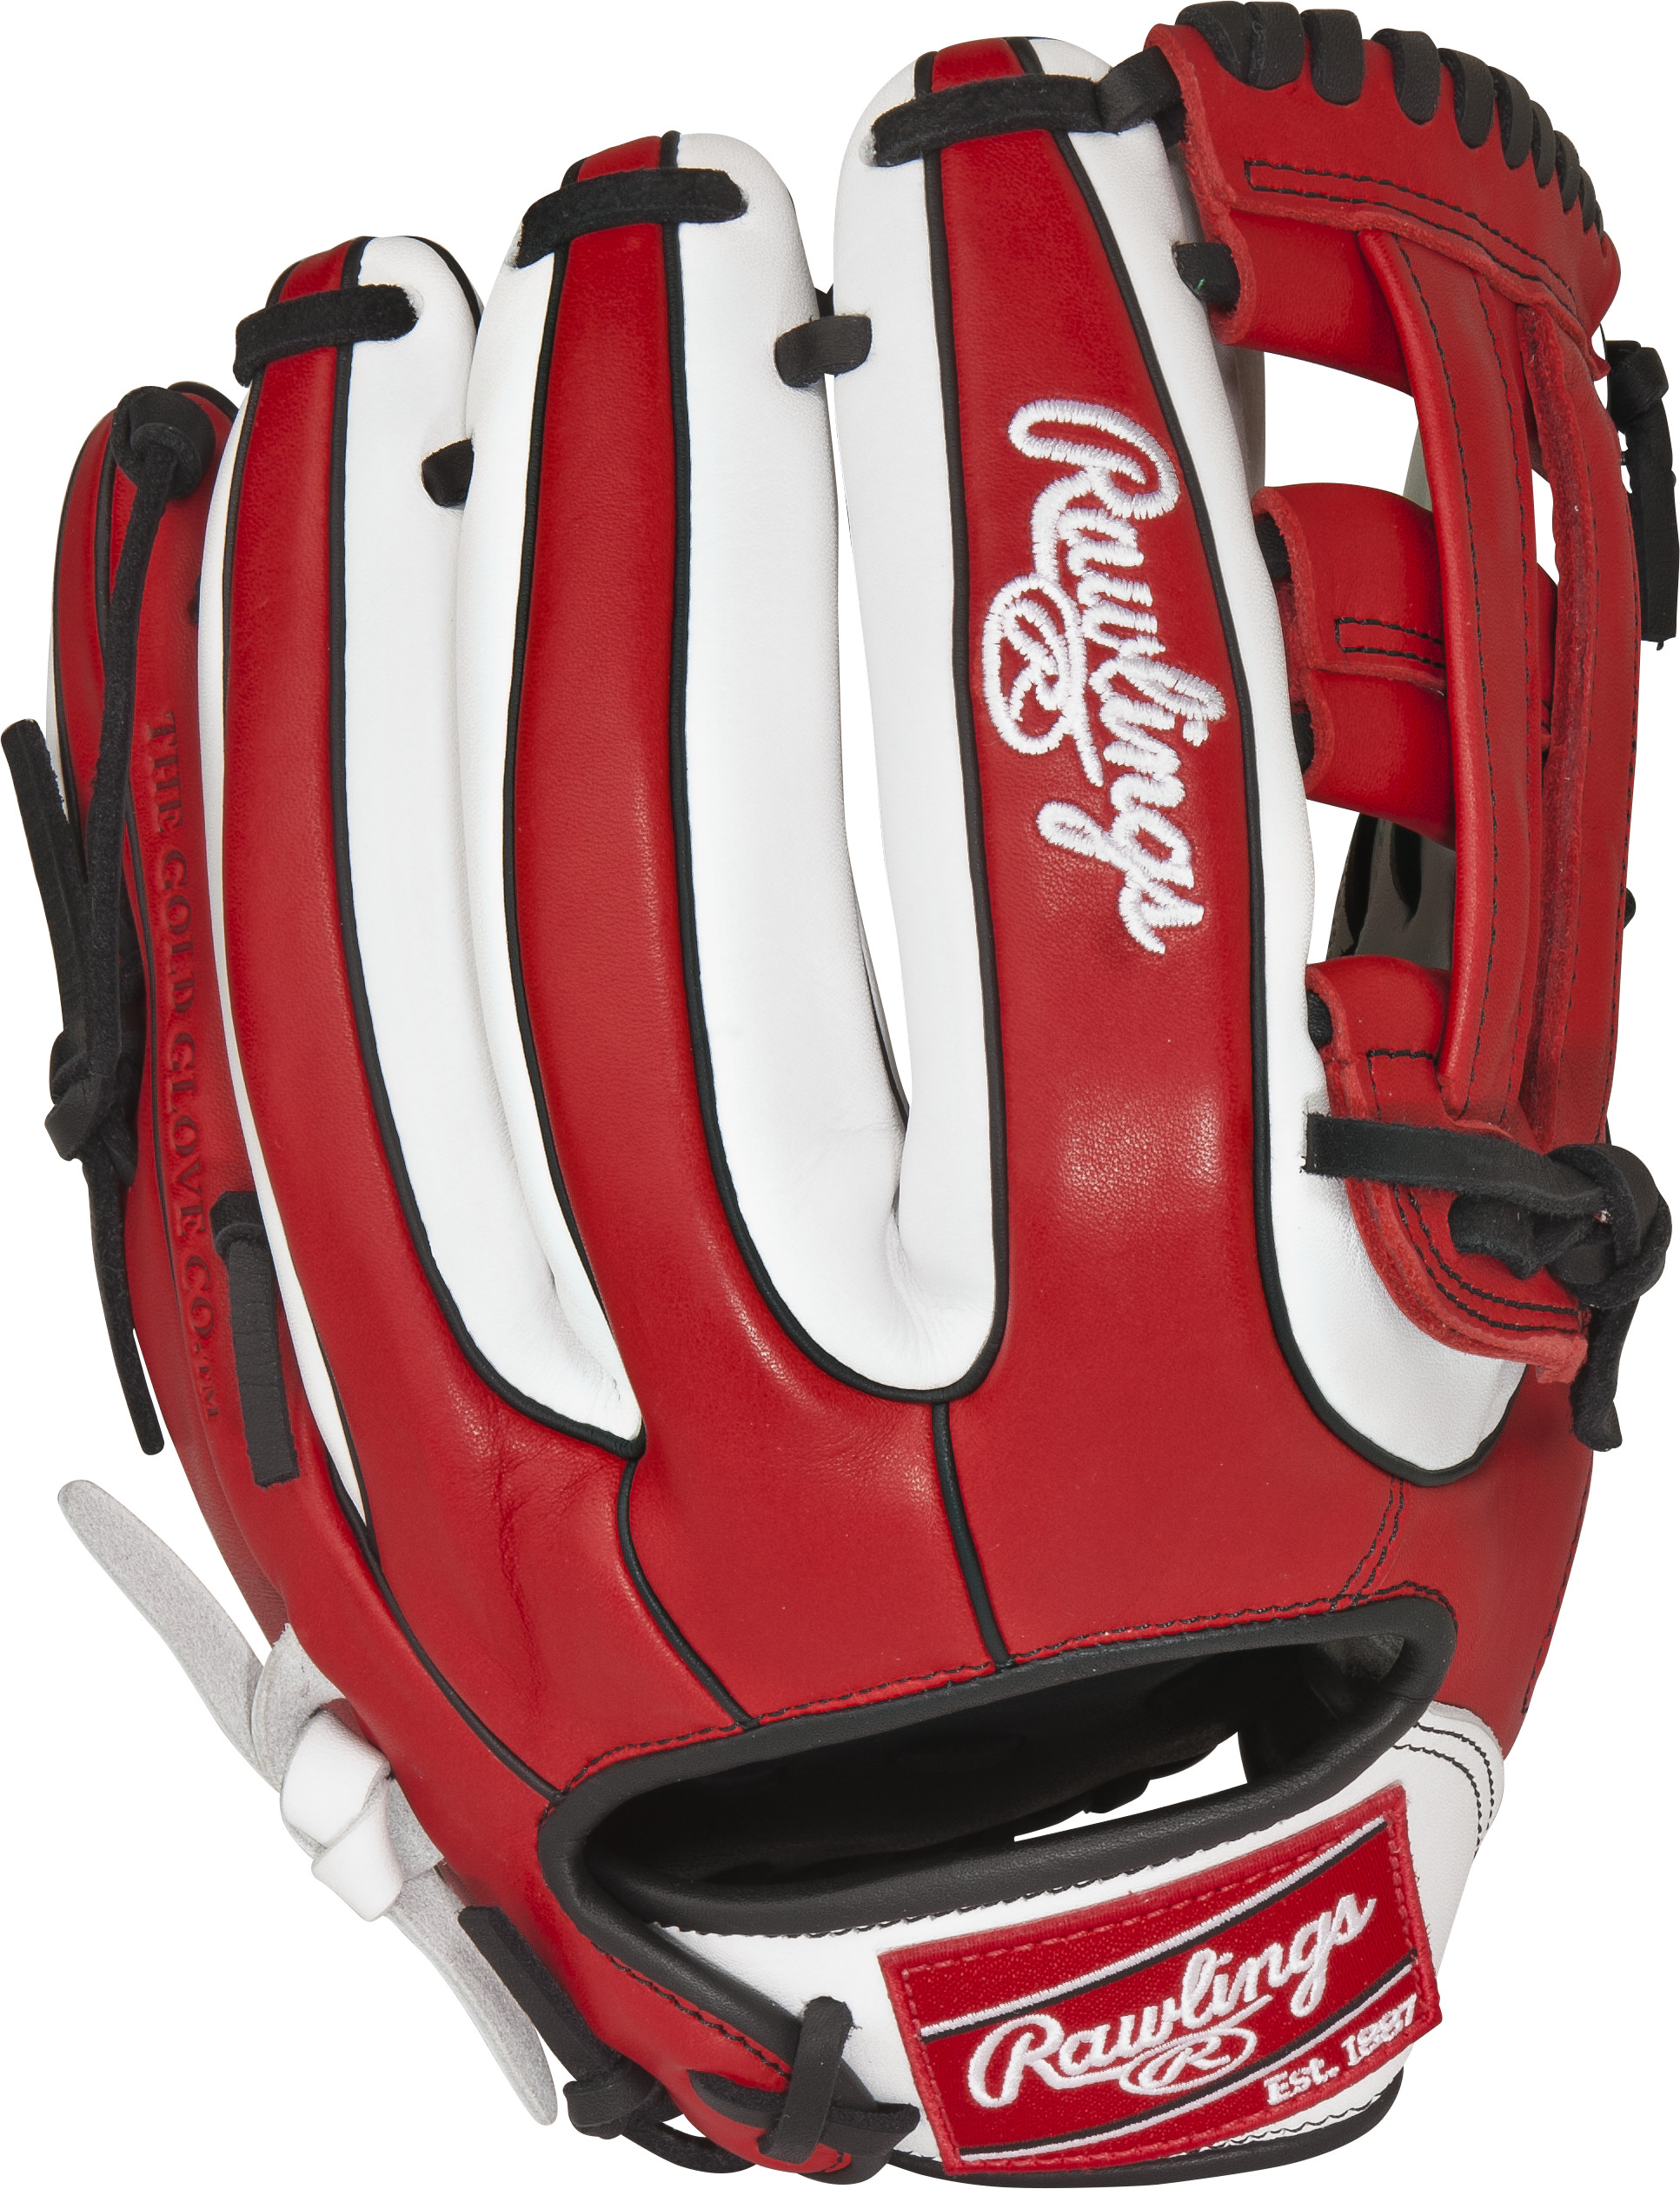 http://www.bestbatdeals.com/images/gloves/rawlings/GXLE315-6WS_back.jpg